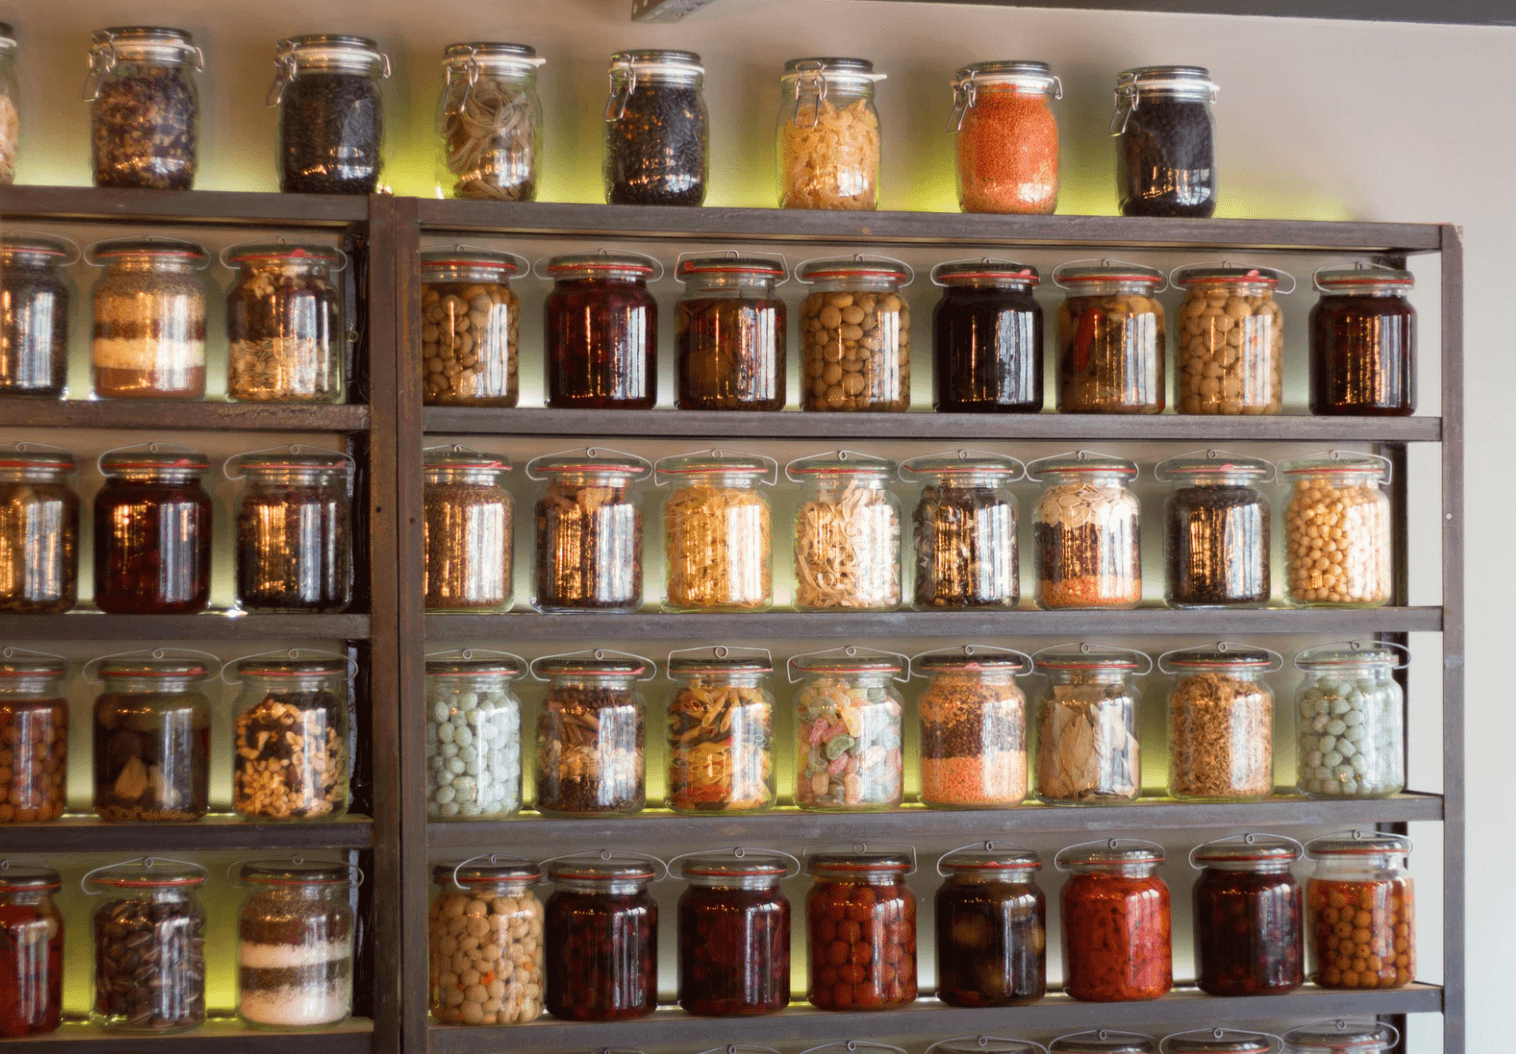 Jars of different colors stored.